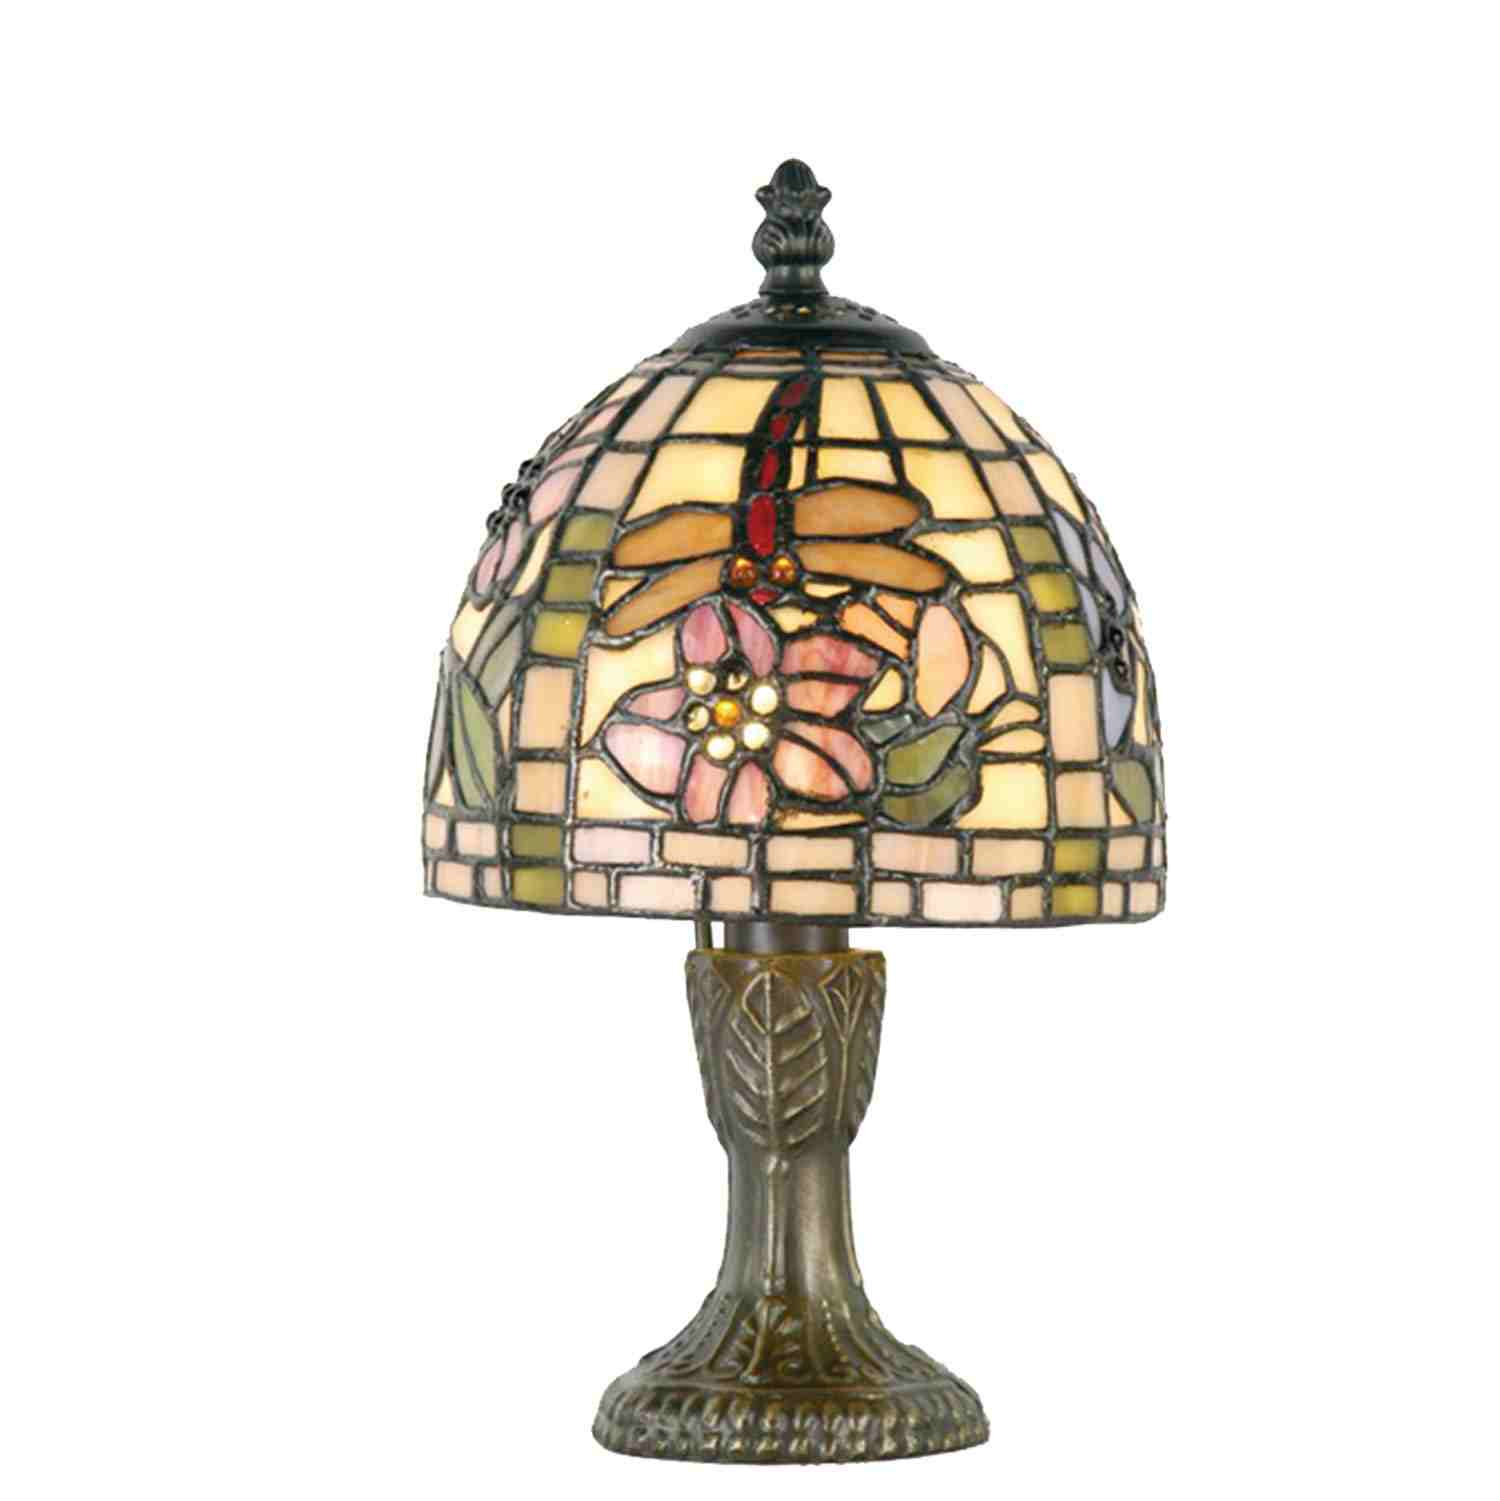 Tiffany Lamp  € 94.00  Product Code:  CLE-5LL-9043